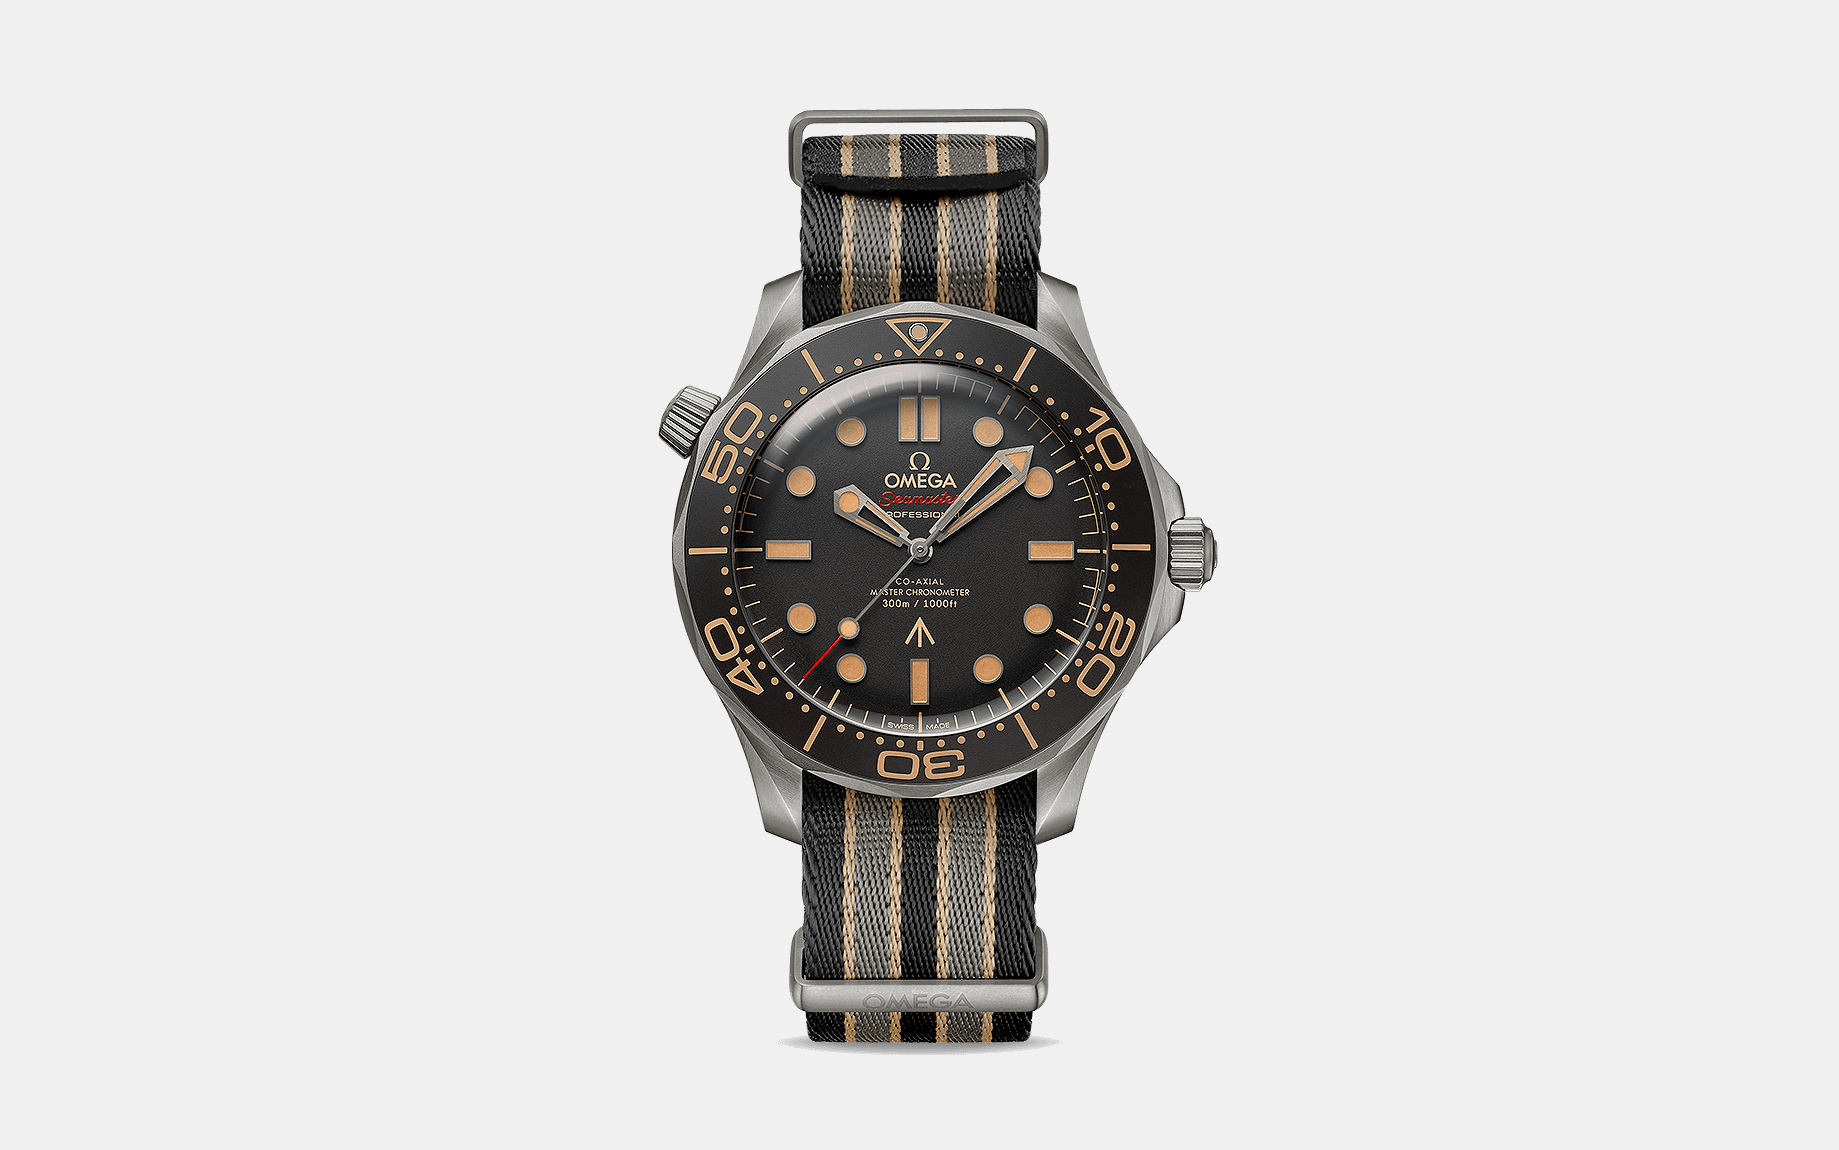 Omega Seamaster Diver Watch 300M 007 Edition